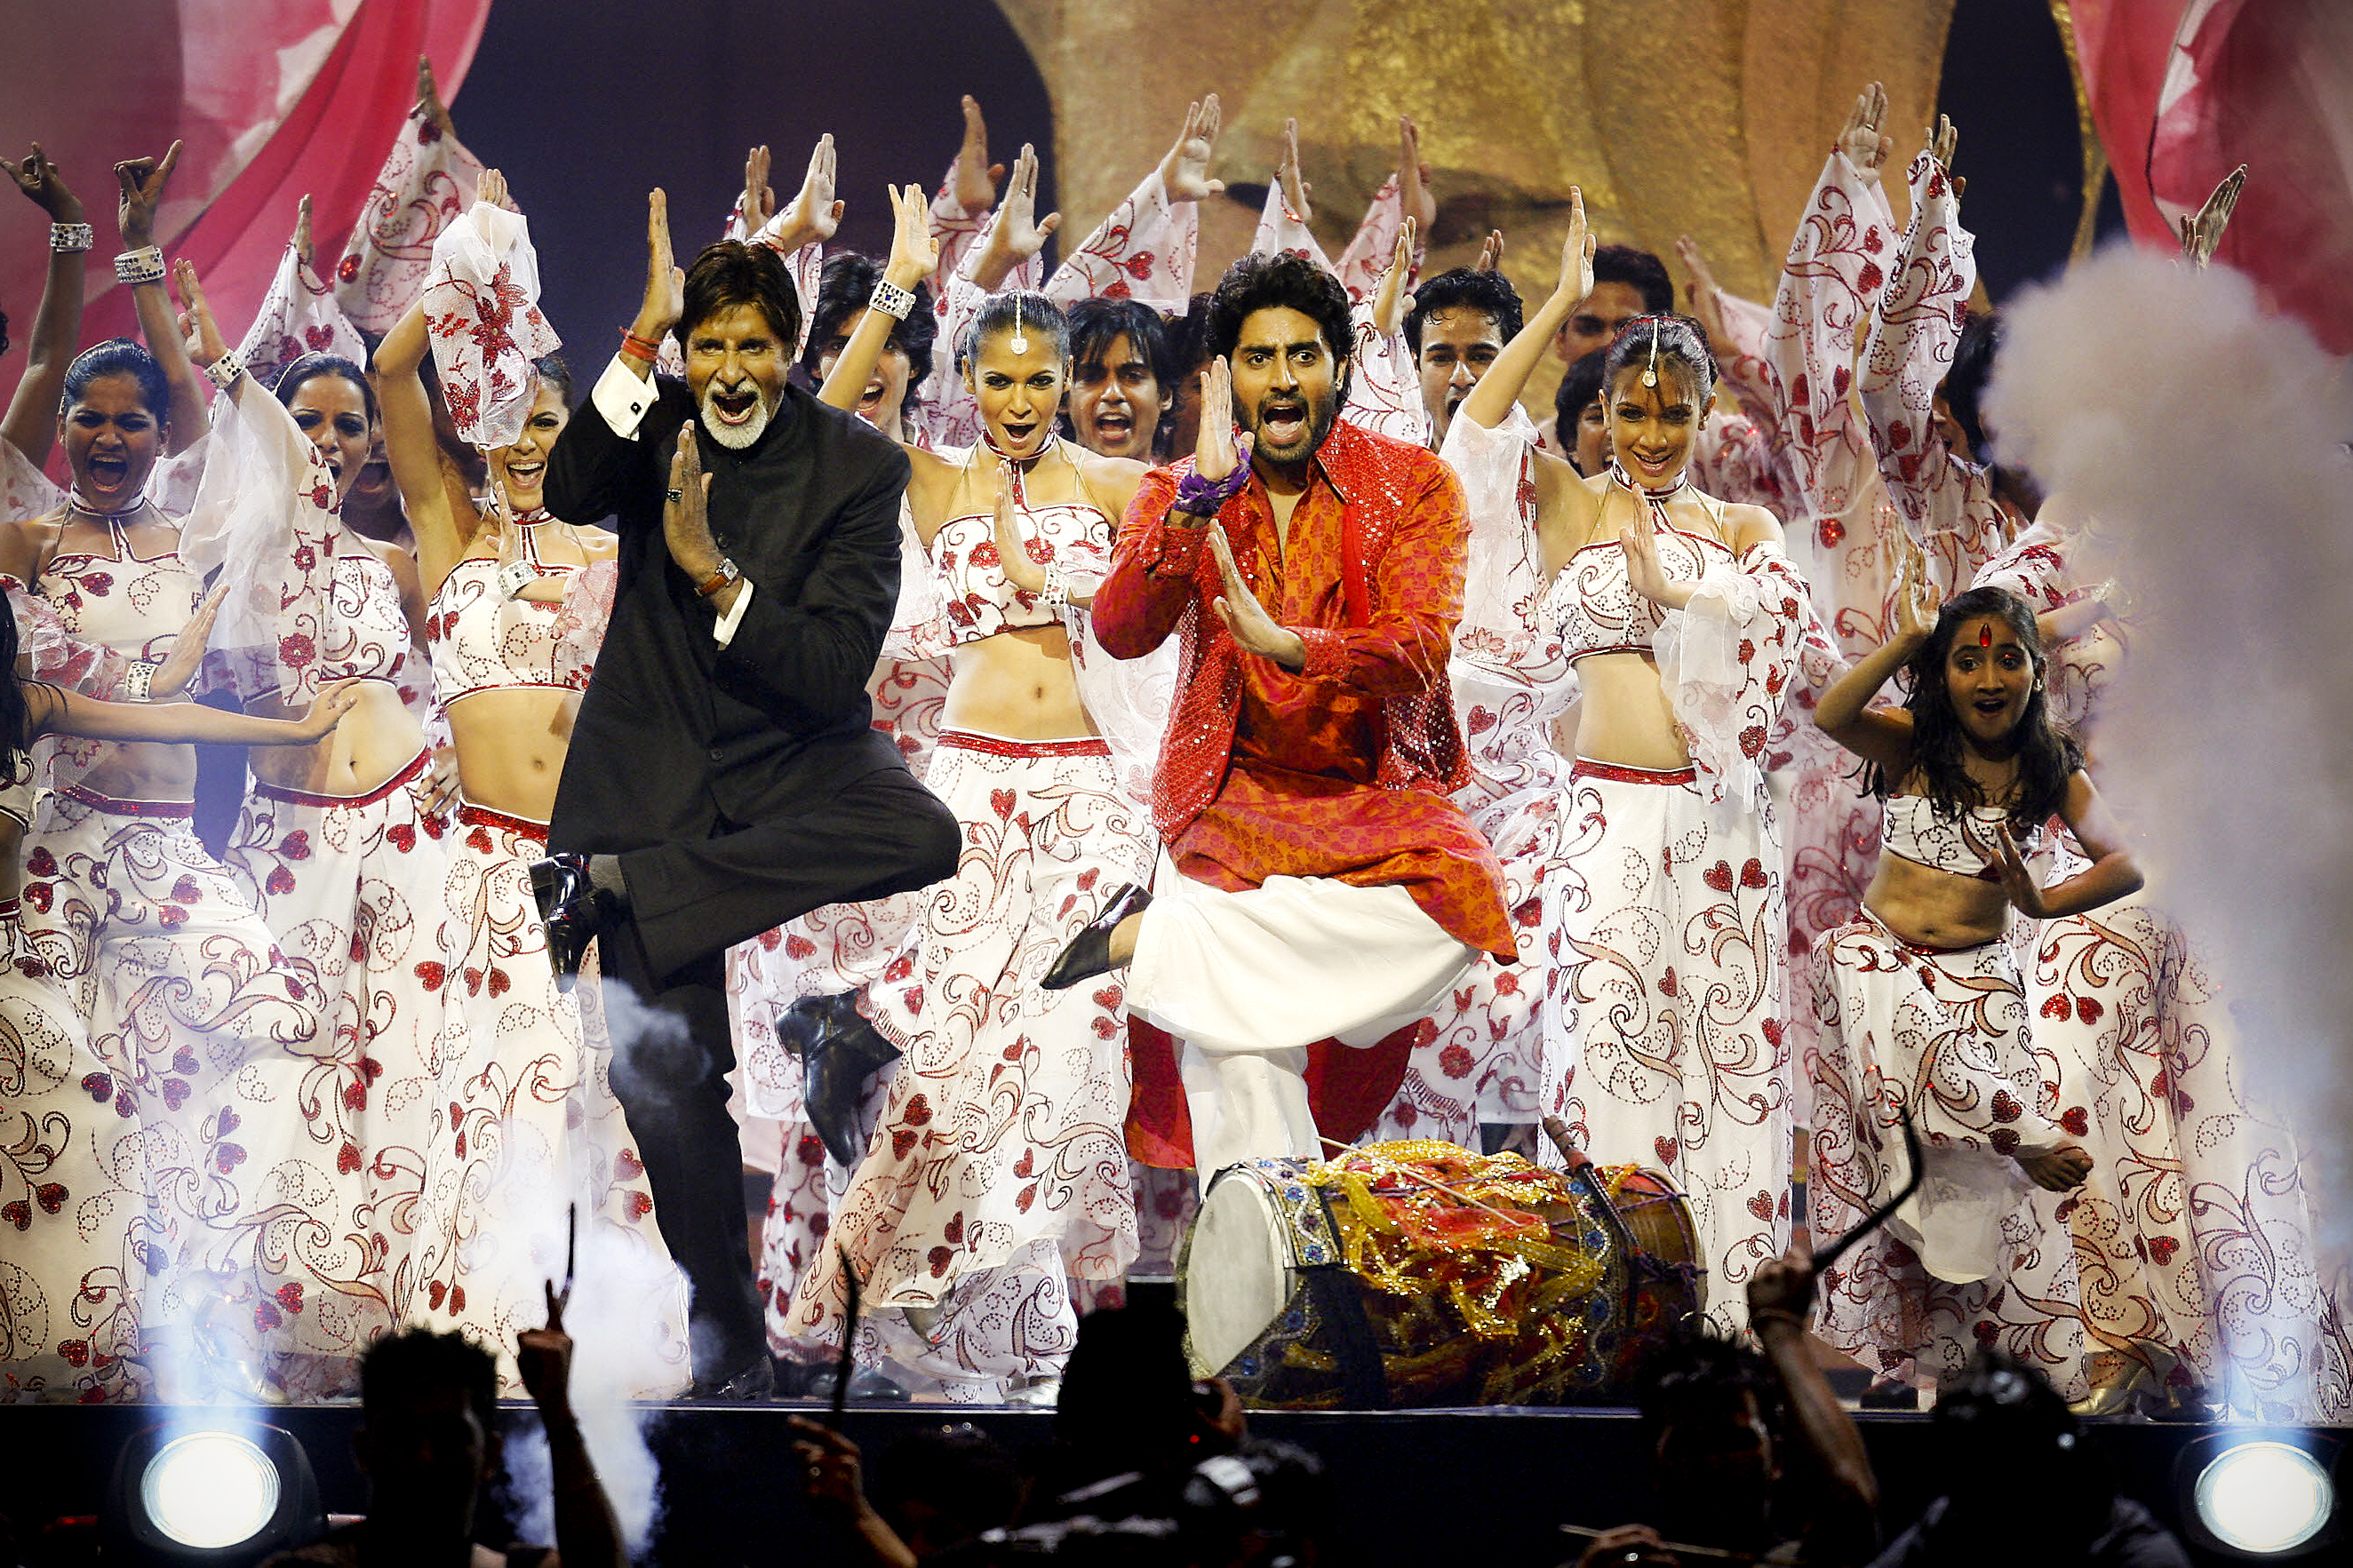 Indian film legend Amitabh Bachchan and his son, Abhishek Bachchan, perform during the International Indian Film Academy Awards ceremony in England, in 2007. The awards, known as the Bollywood Oscars, are watched by hundreds of millions of people around the world.